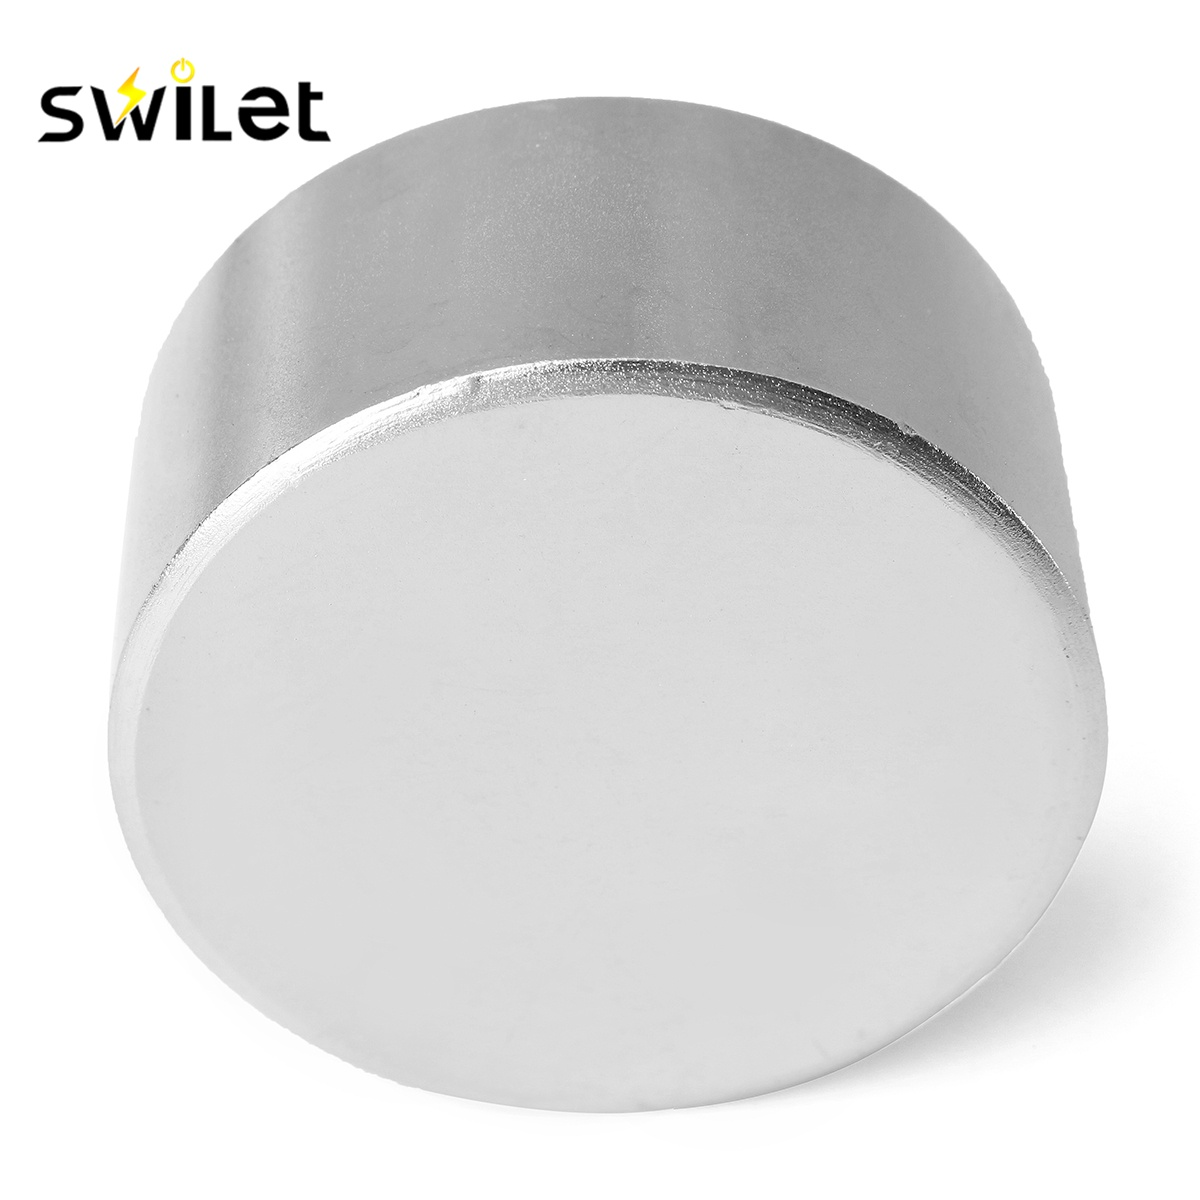 SWILET Block 40x40x20mm Super Strong N52 High Quality Rare Earth Neo Magnet Neodymium Powerful Permanent Magnetic